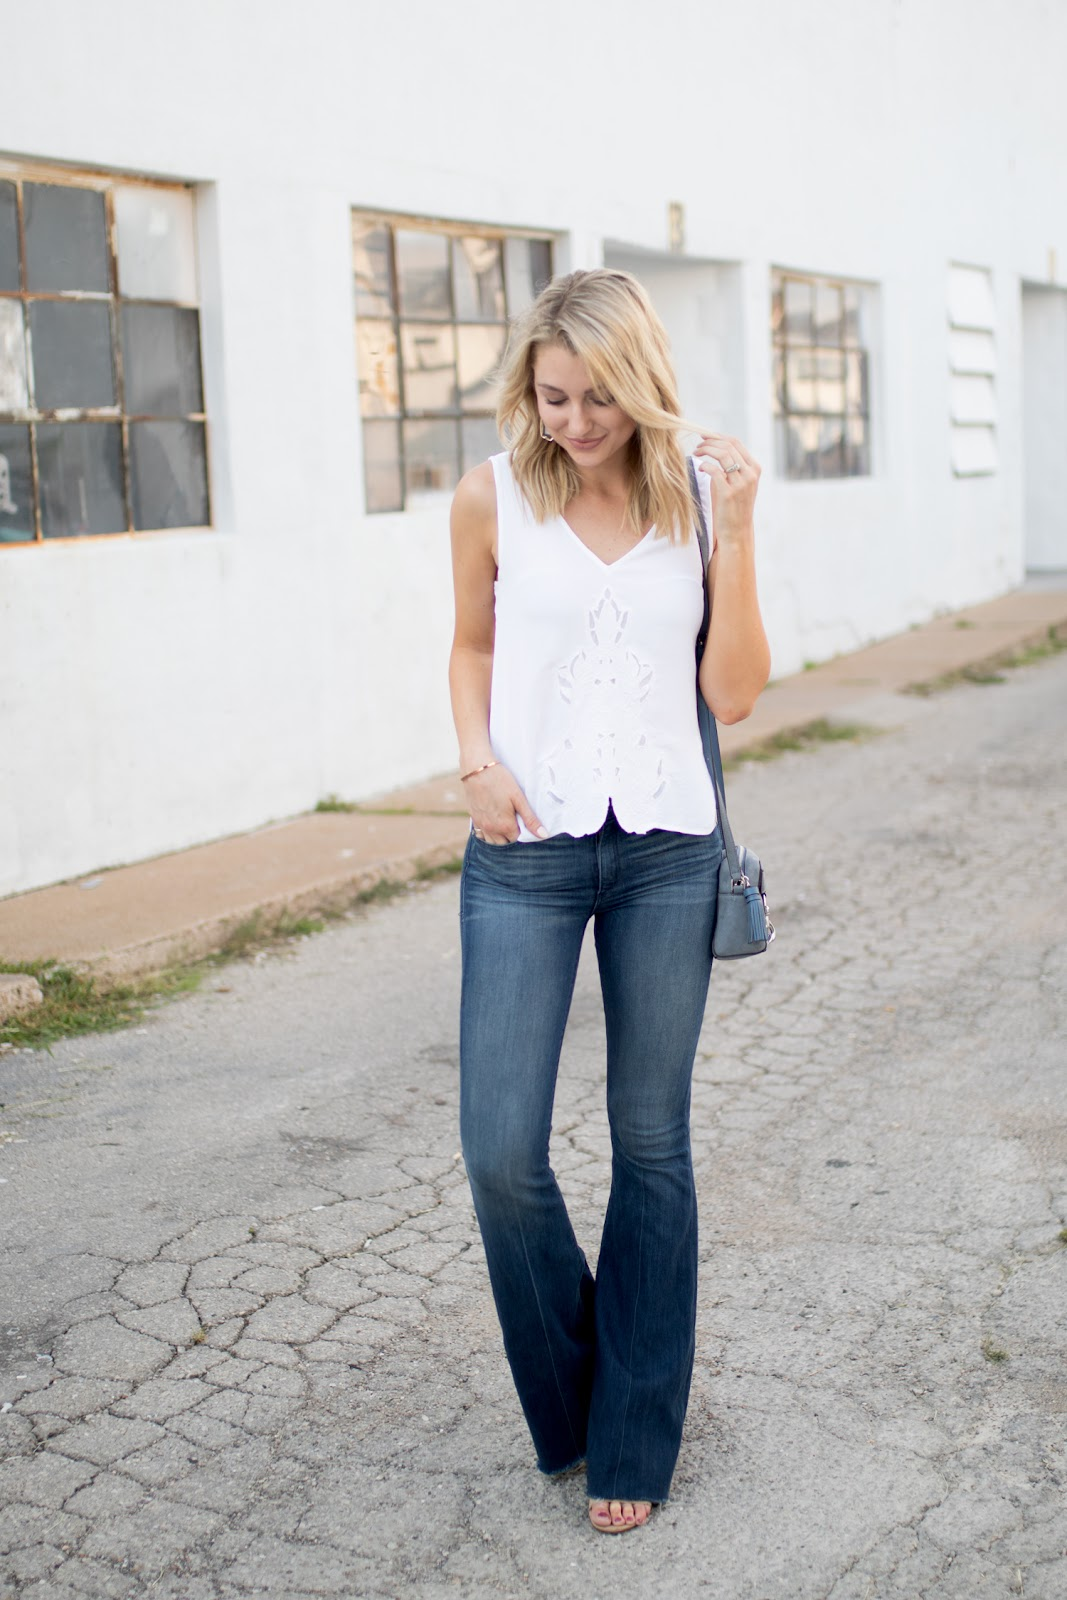 Flare jeans with a cute tank top